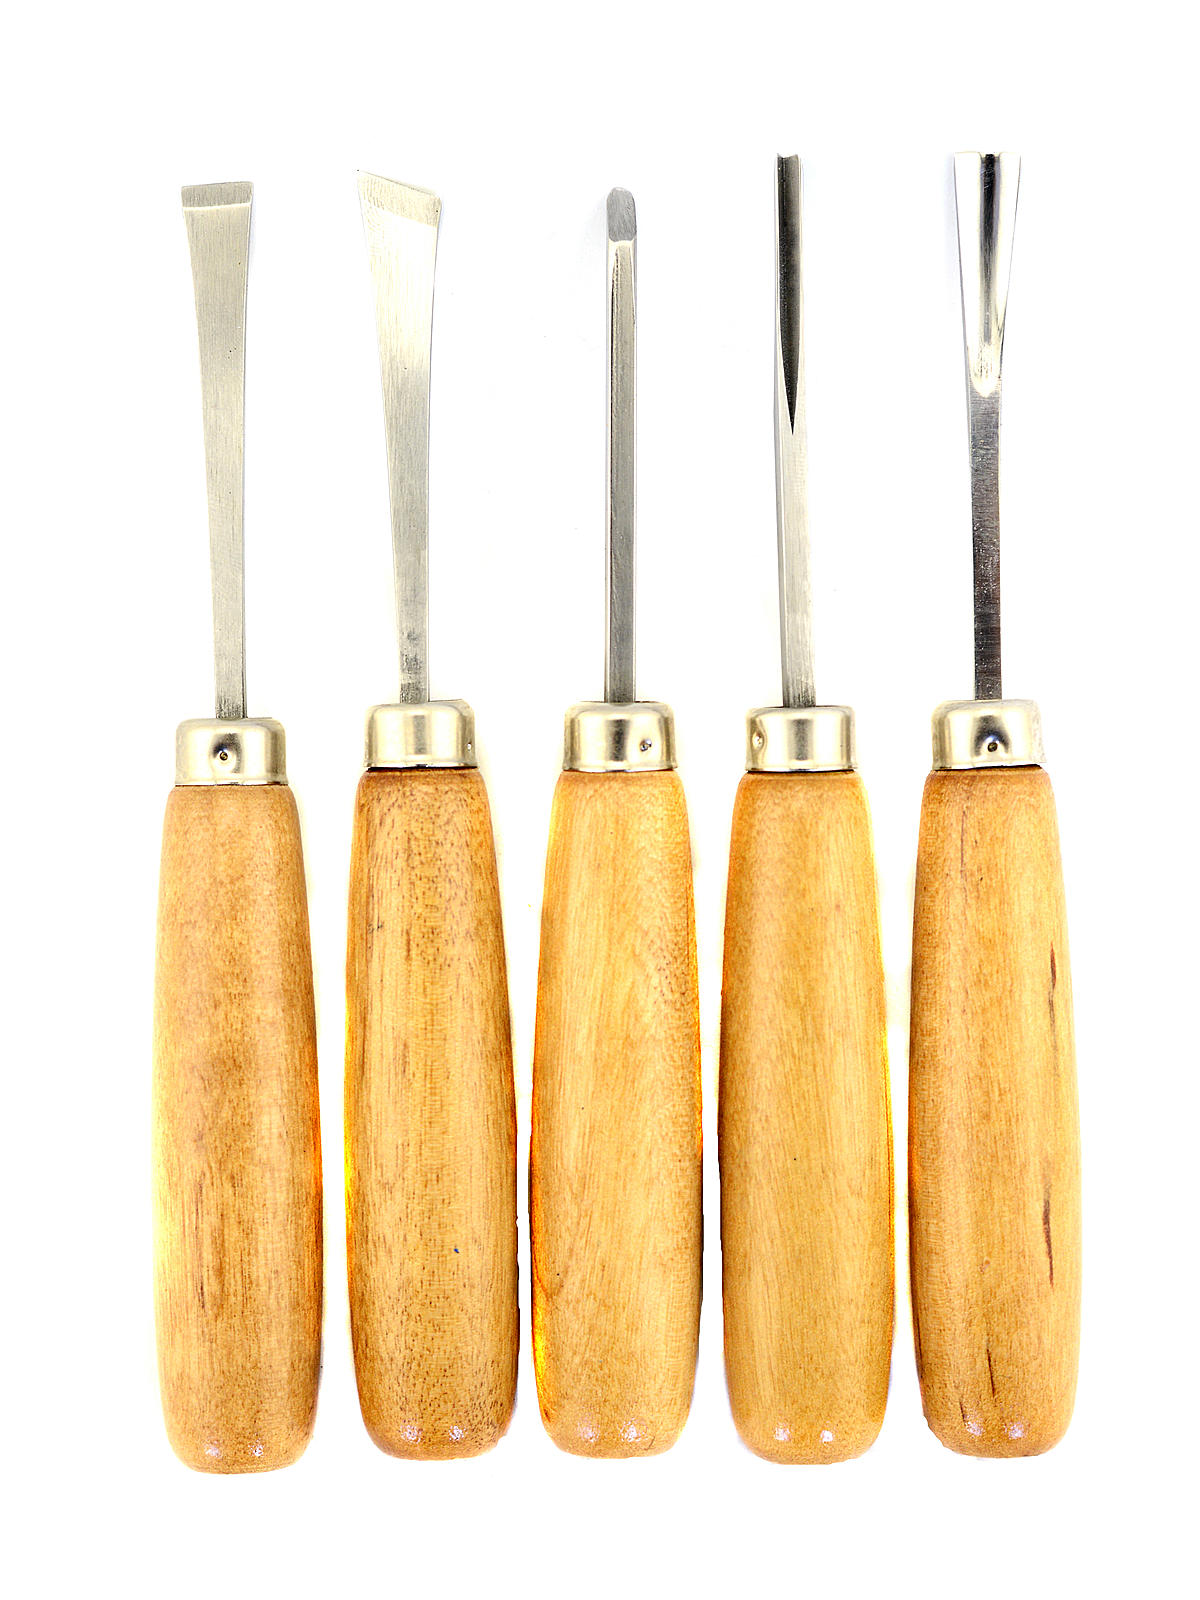 110 Wood Carving Set